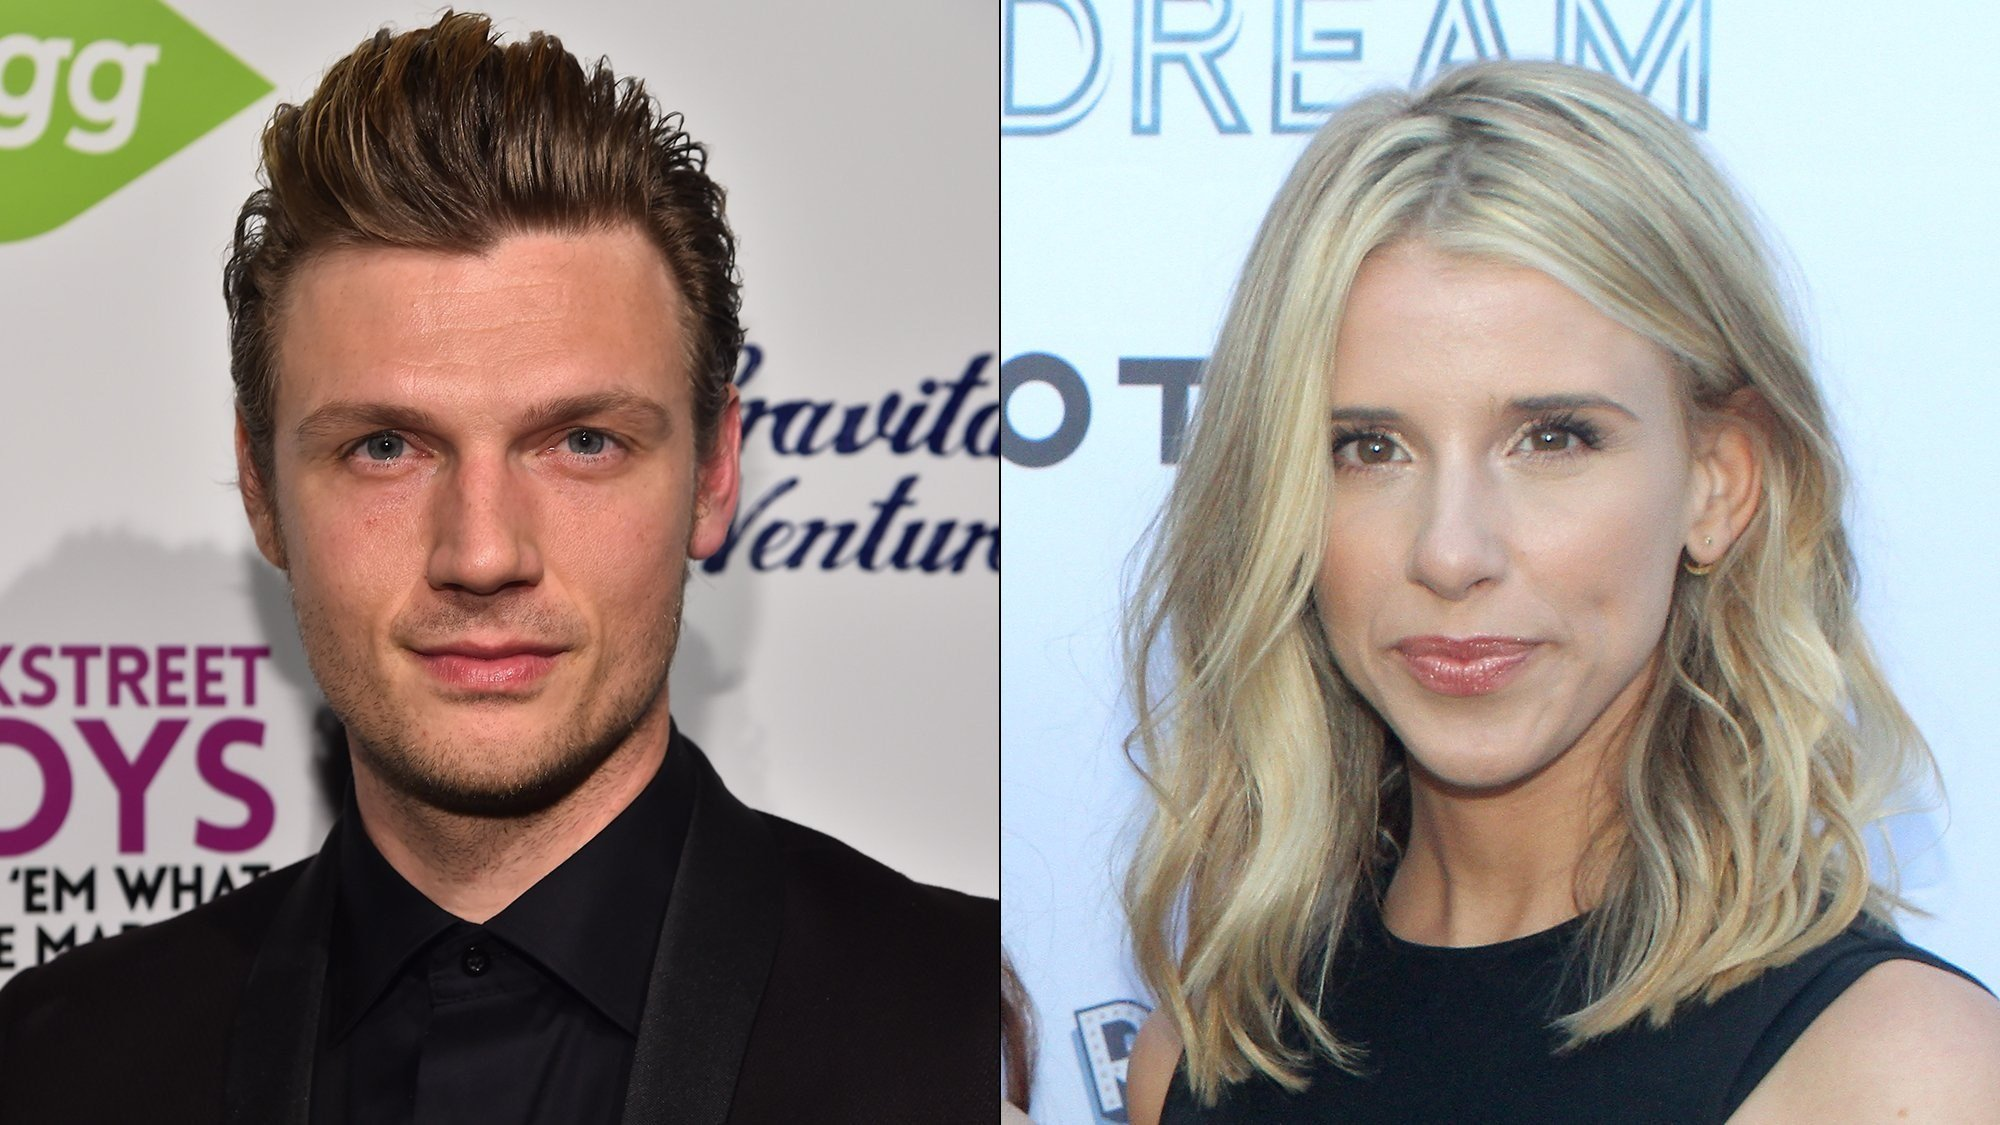 This image is for use with this specific article only** Nick Carter has responded to a rape allegation from singer Melissa Schuman